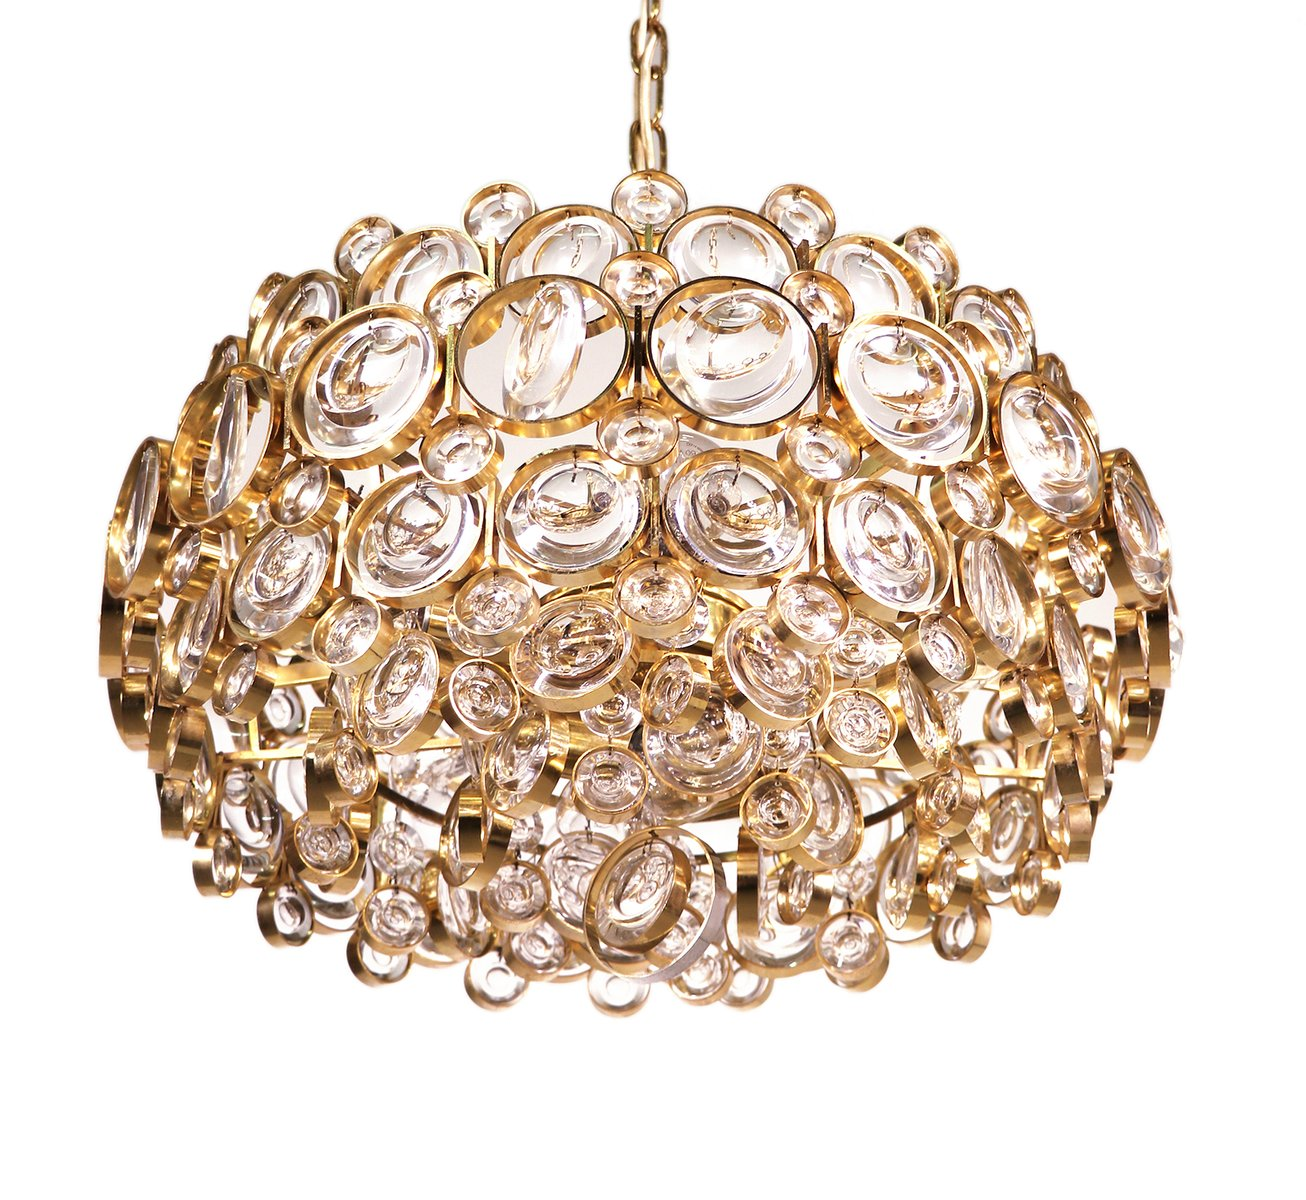 Gold plated crystal chandelier by gaetano sciolari for palwa 1960s gold plated crystal chandelier by gaetano sciolari for palwa 1960s mozeypictures Gallery